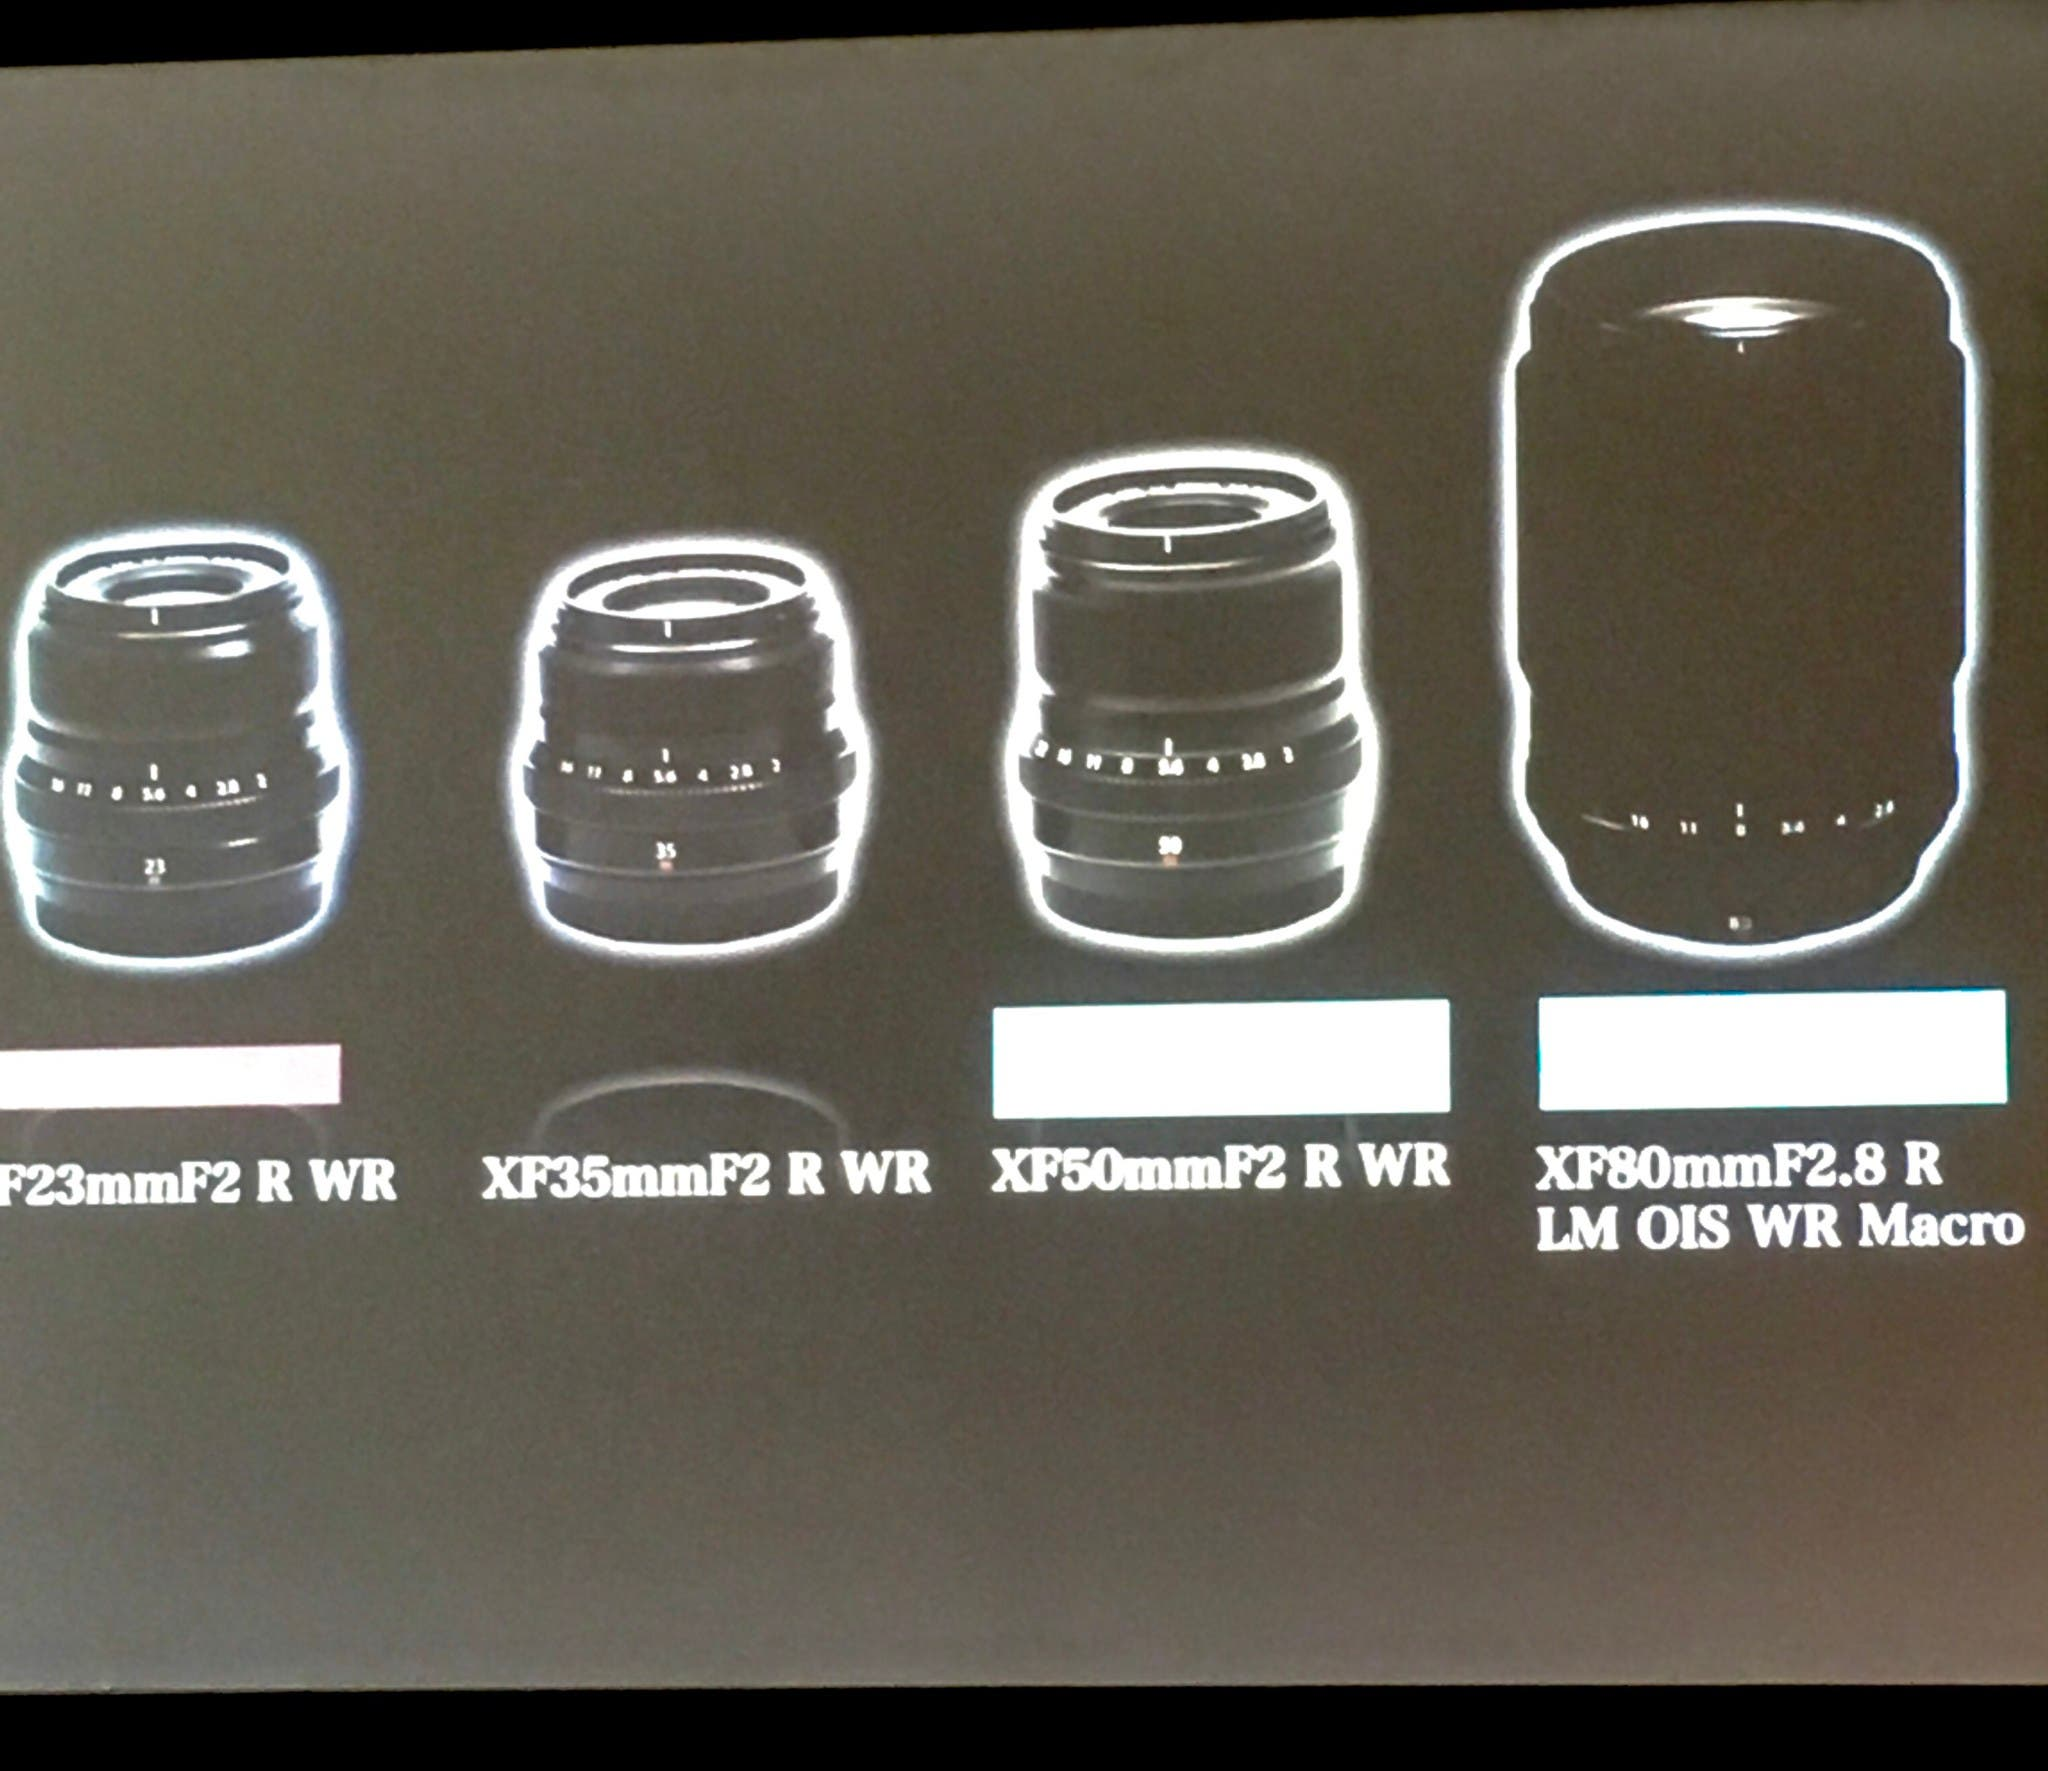 Fujifilm's X-Series, What To Expect Over the Next Year